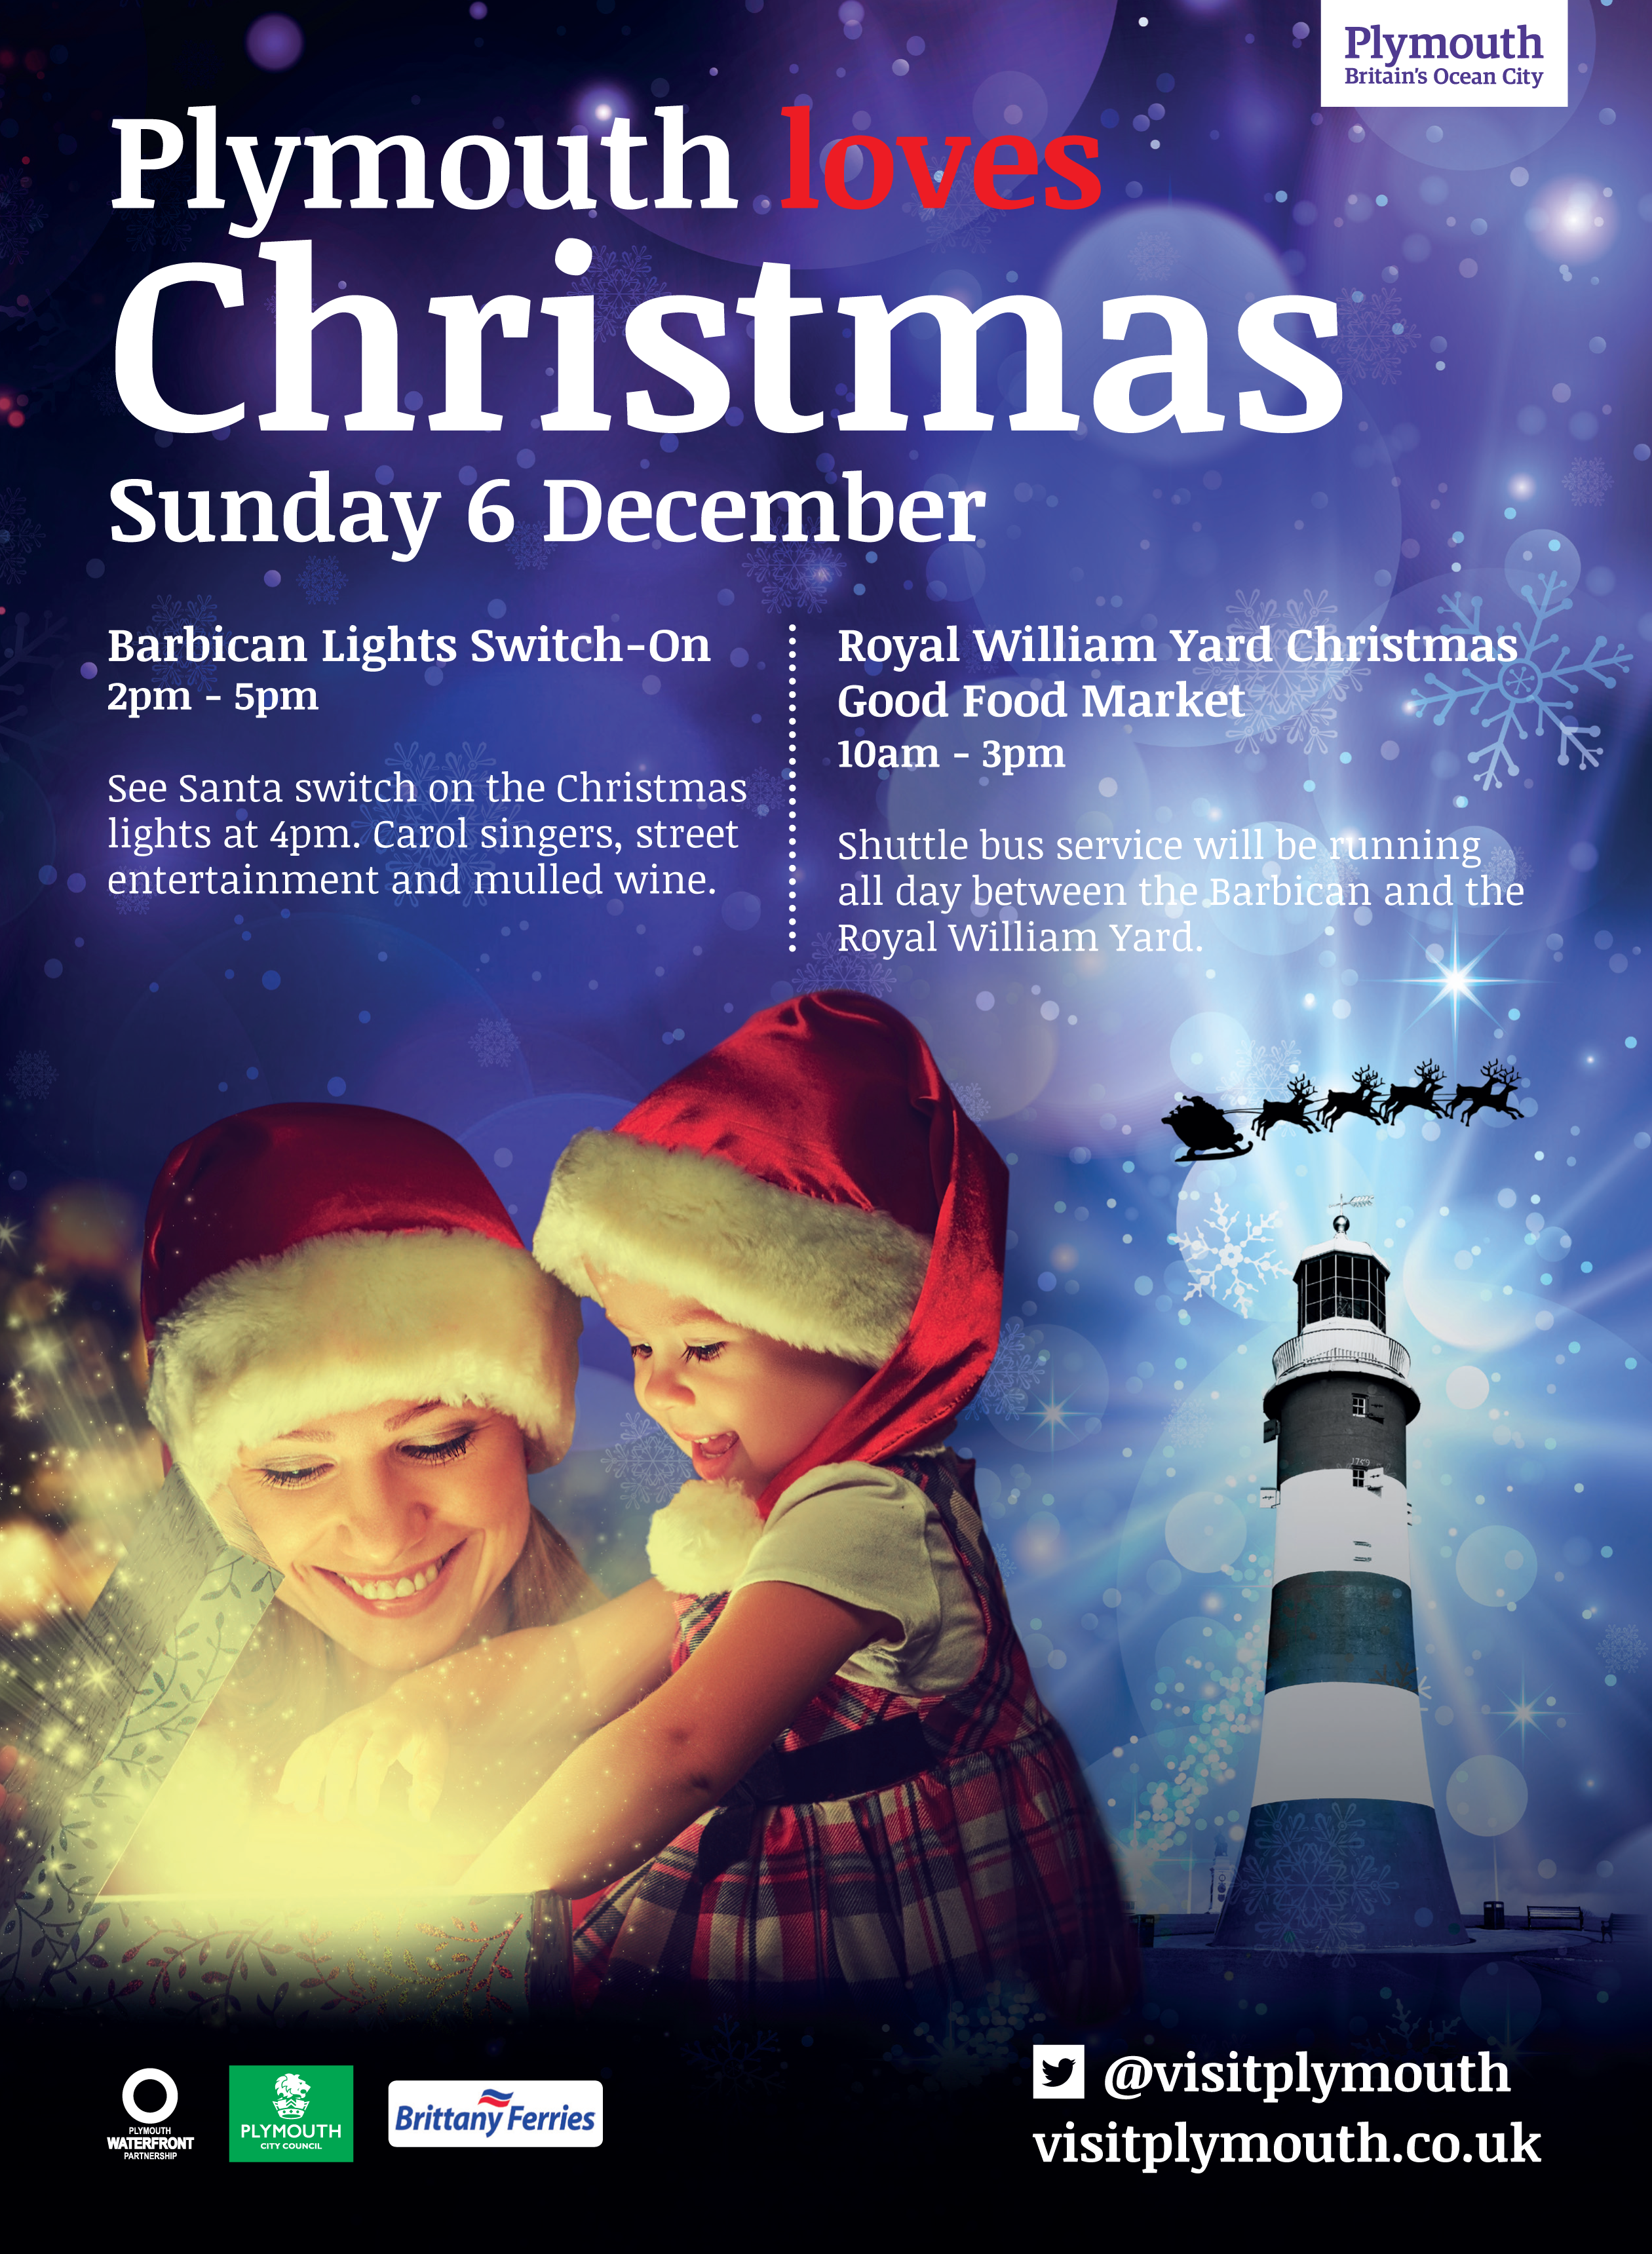 Event: Plymouth Barbican Christmas Light Switch On